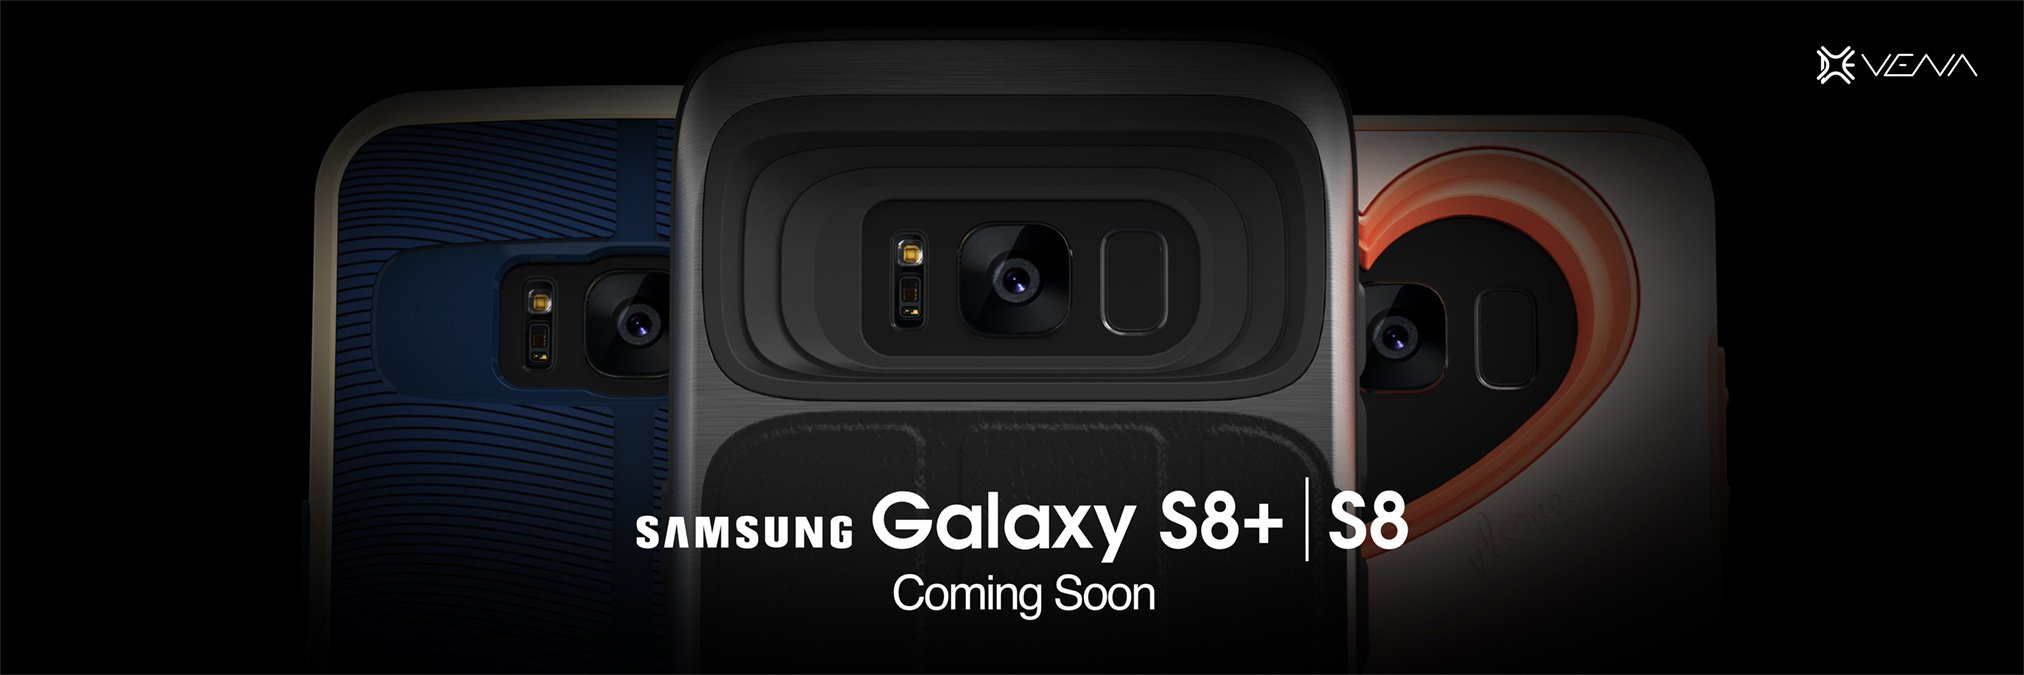 Galaxy S8 Preview